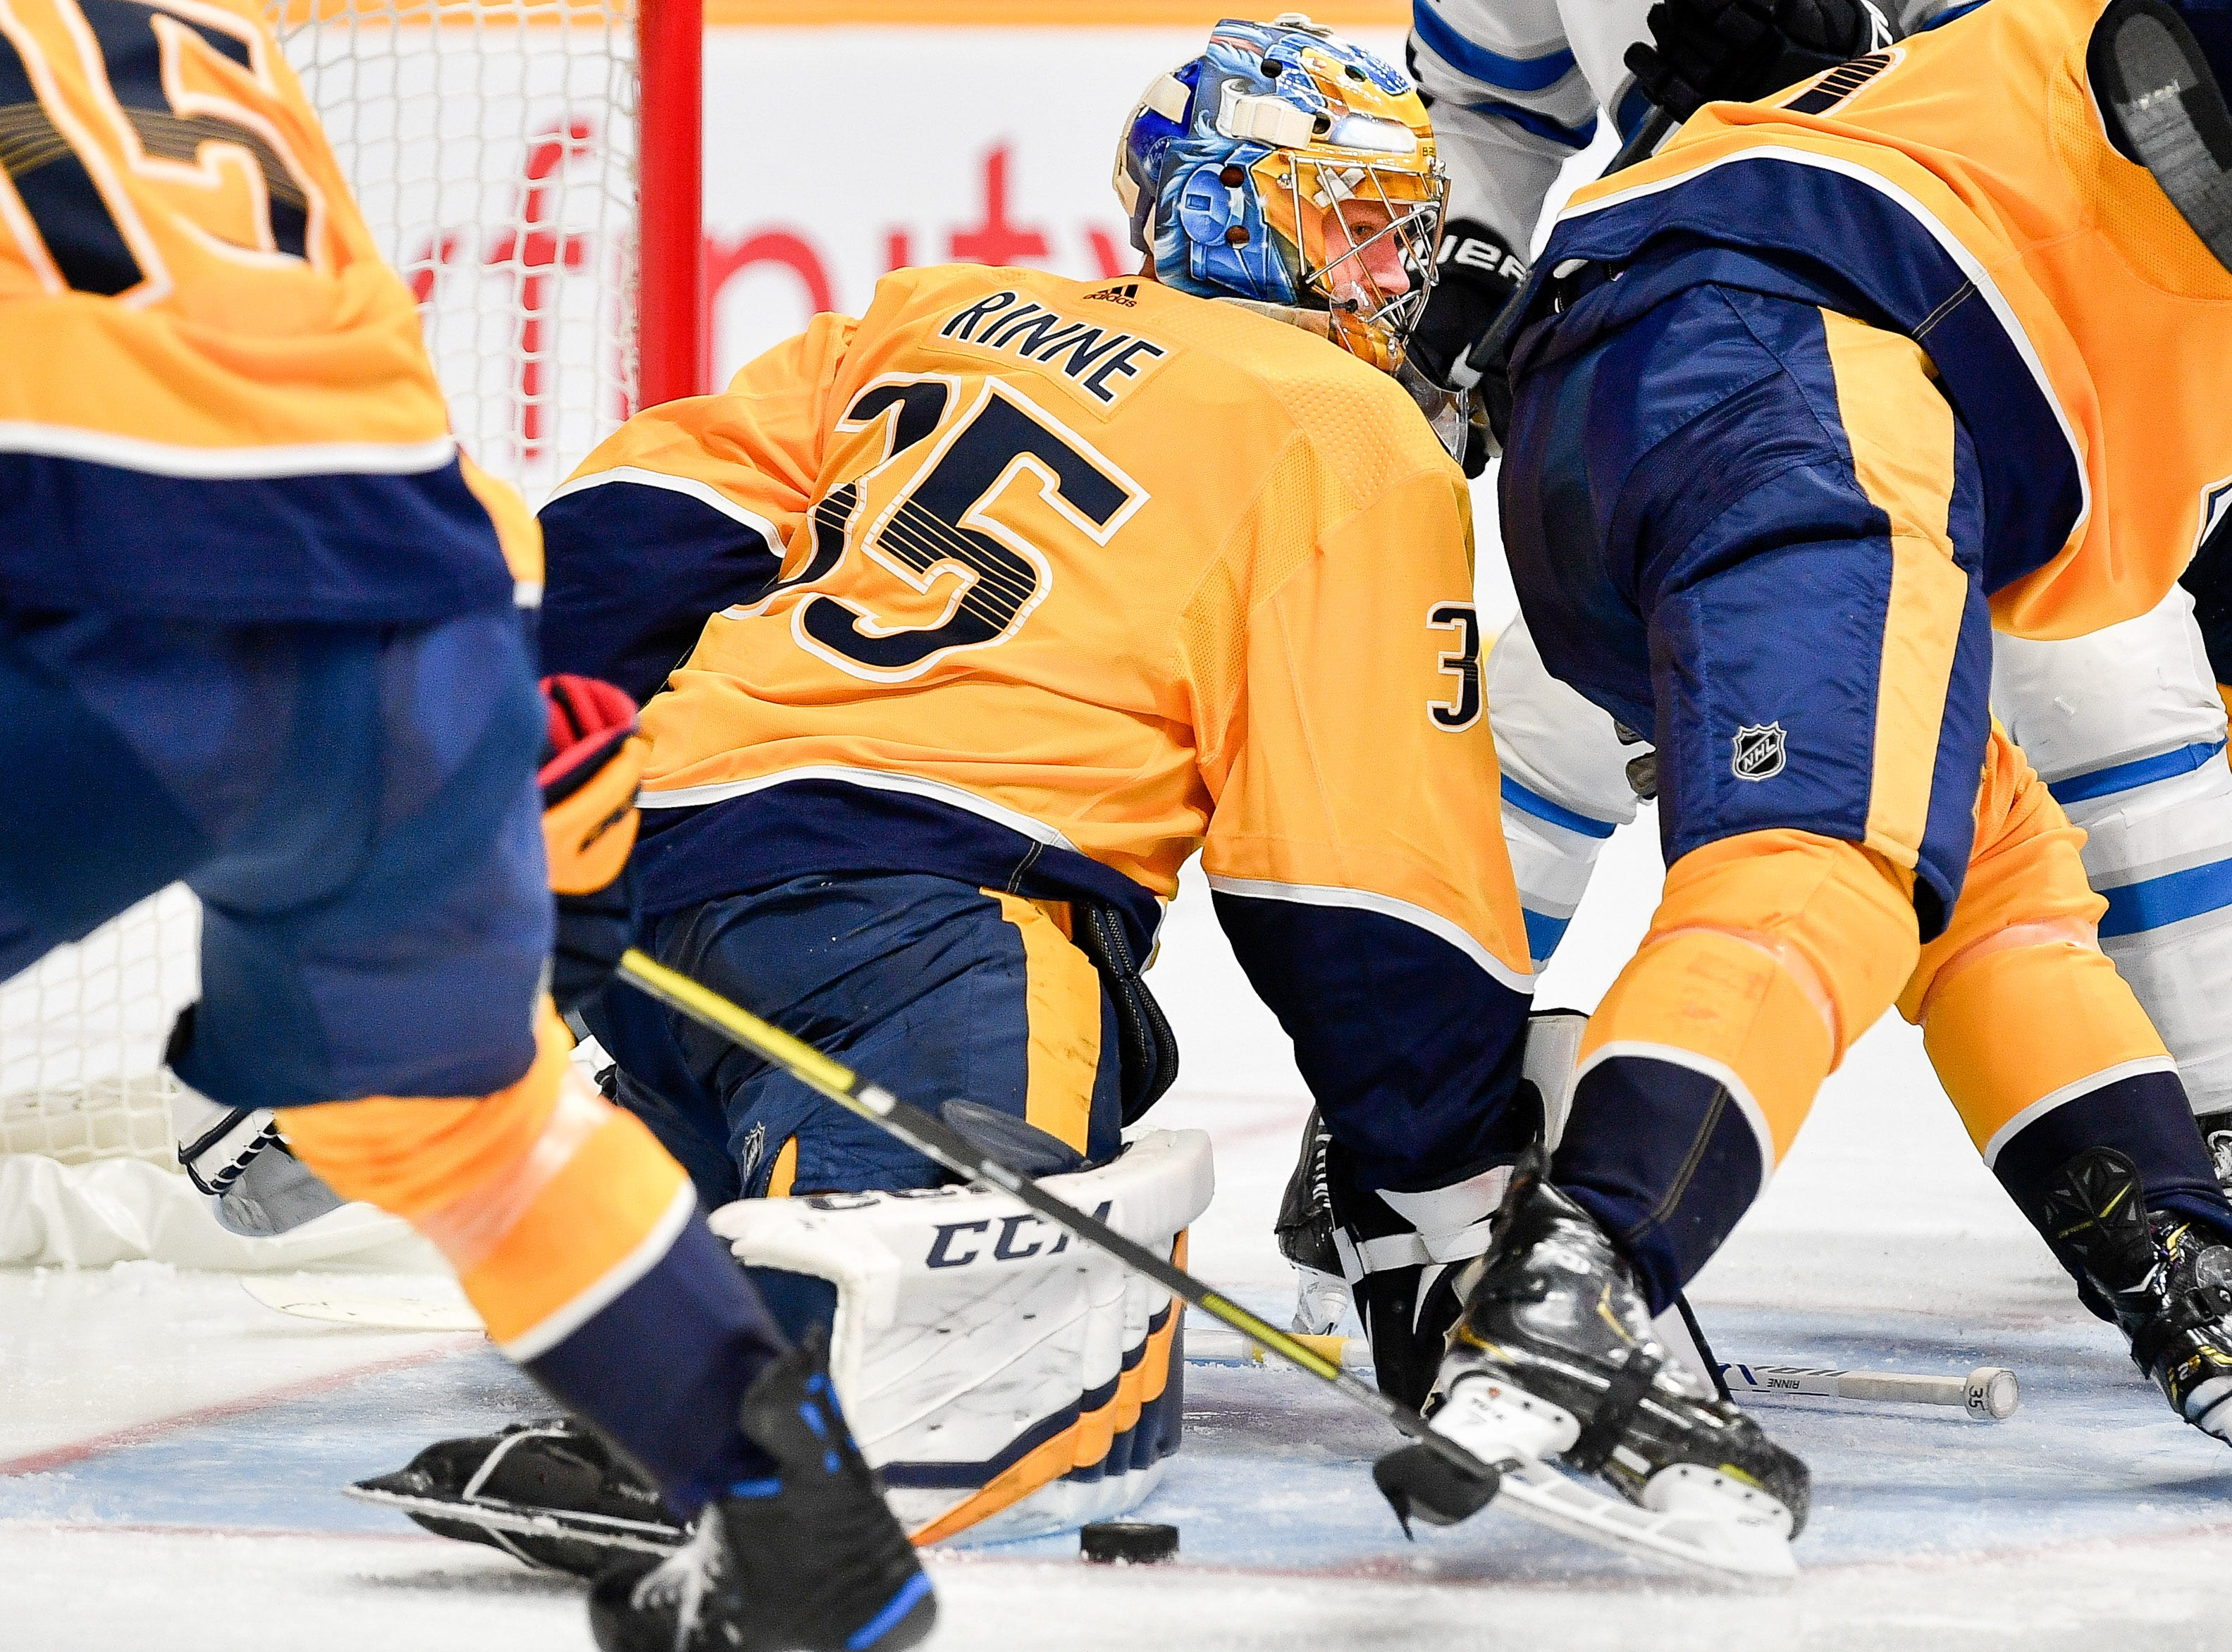 Nashville Predators goaltender Pekka Rinne (35) looks for the puck against the Winnipeg Jets during the second period at Bridgestone Arena in Nashville, Tenn., Thursday, Oct. 11, 2018.